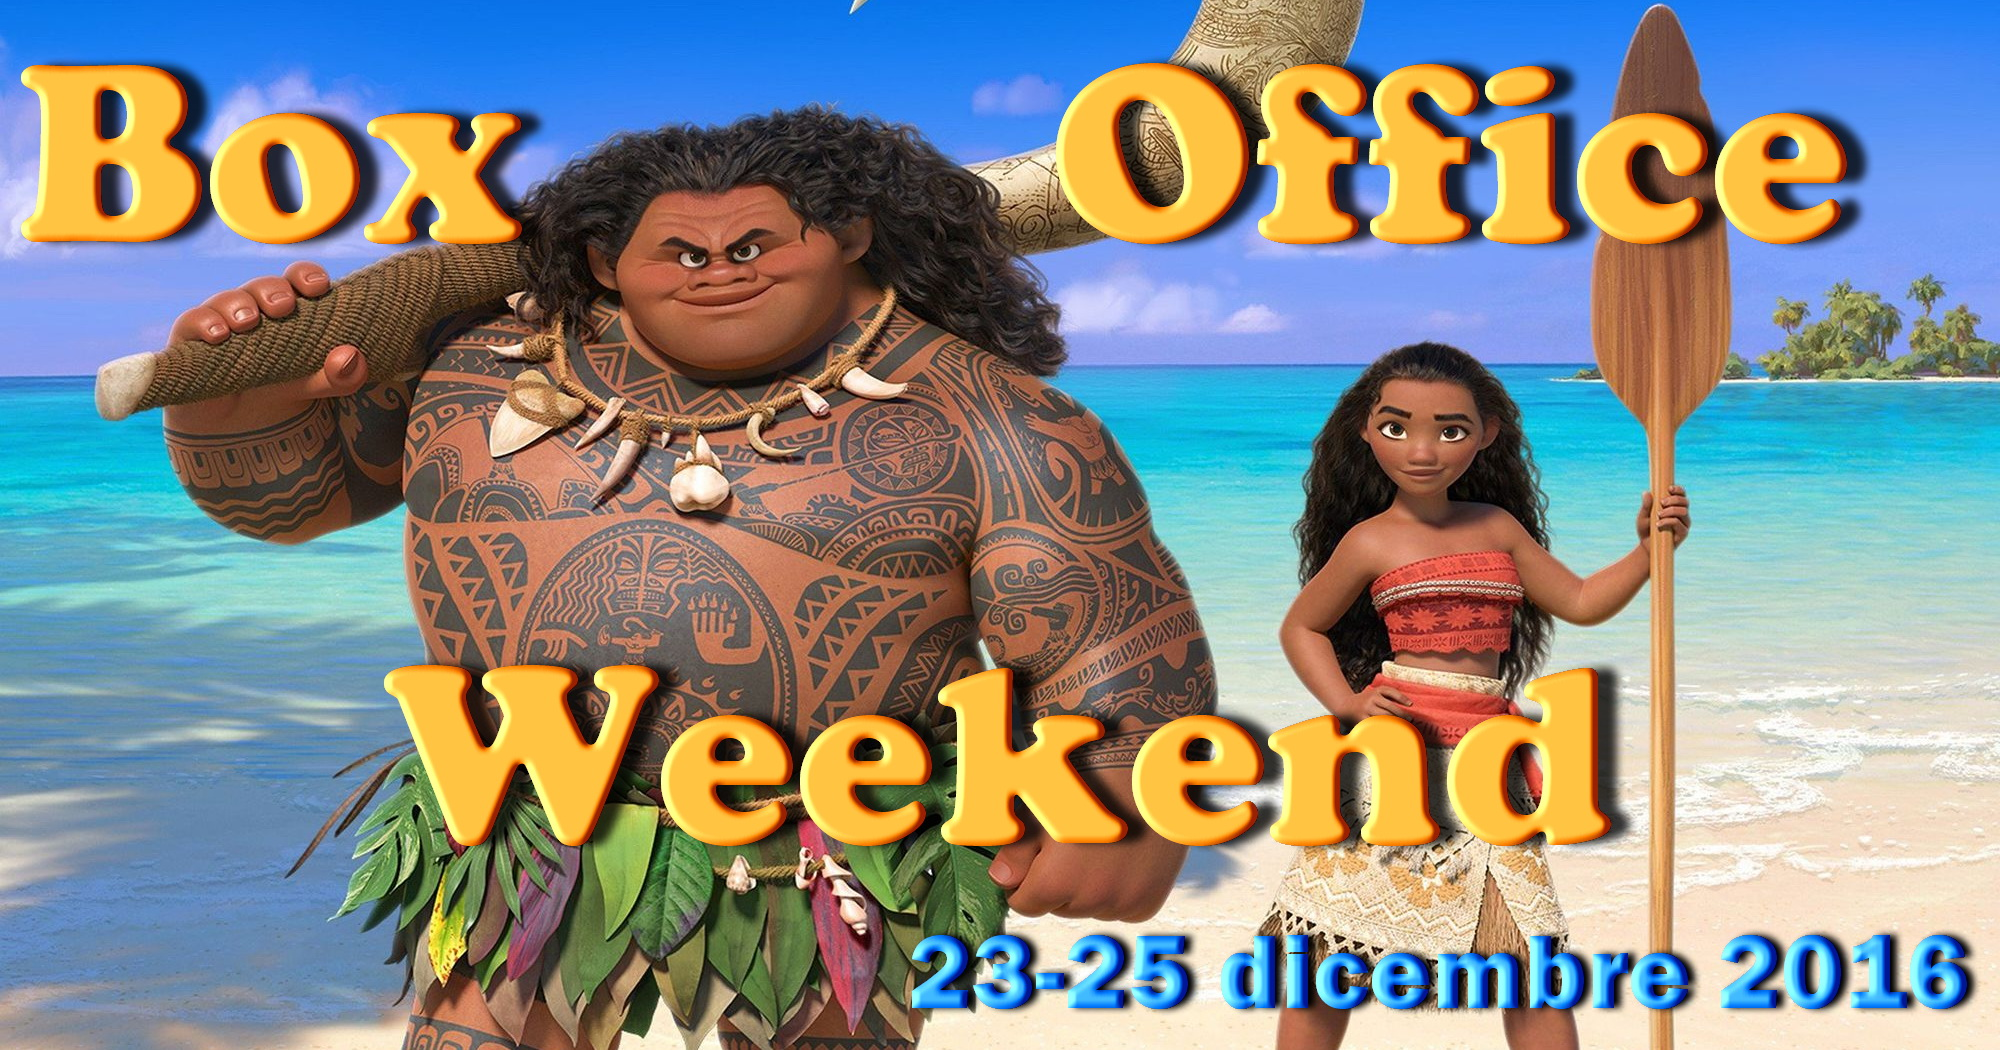 Ultimo appuntamento del 2016 con la rubrica Box Office Weekend e gli incassi del fine settimana cinematografico, con Oceania che batte Rogue One: A Star Wars Story. Disney batte Disney: sembra […]